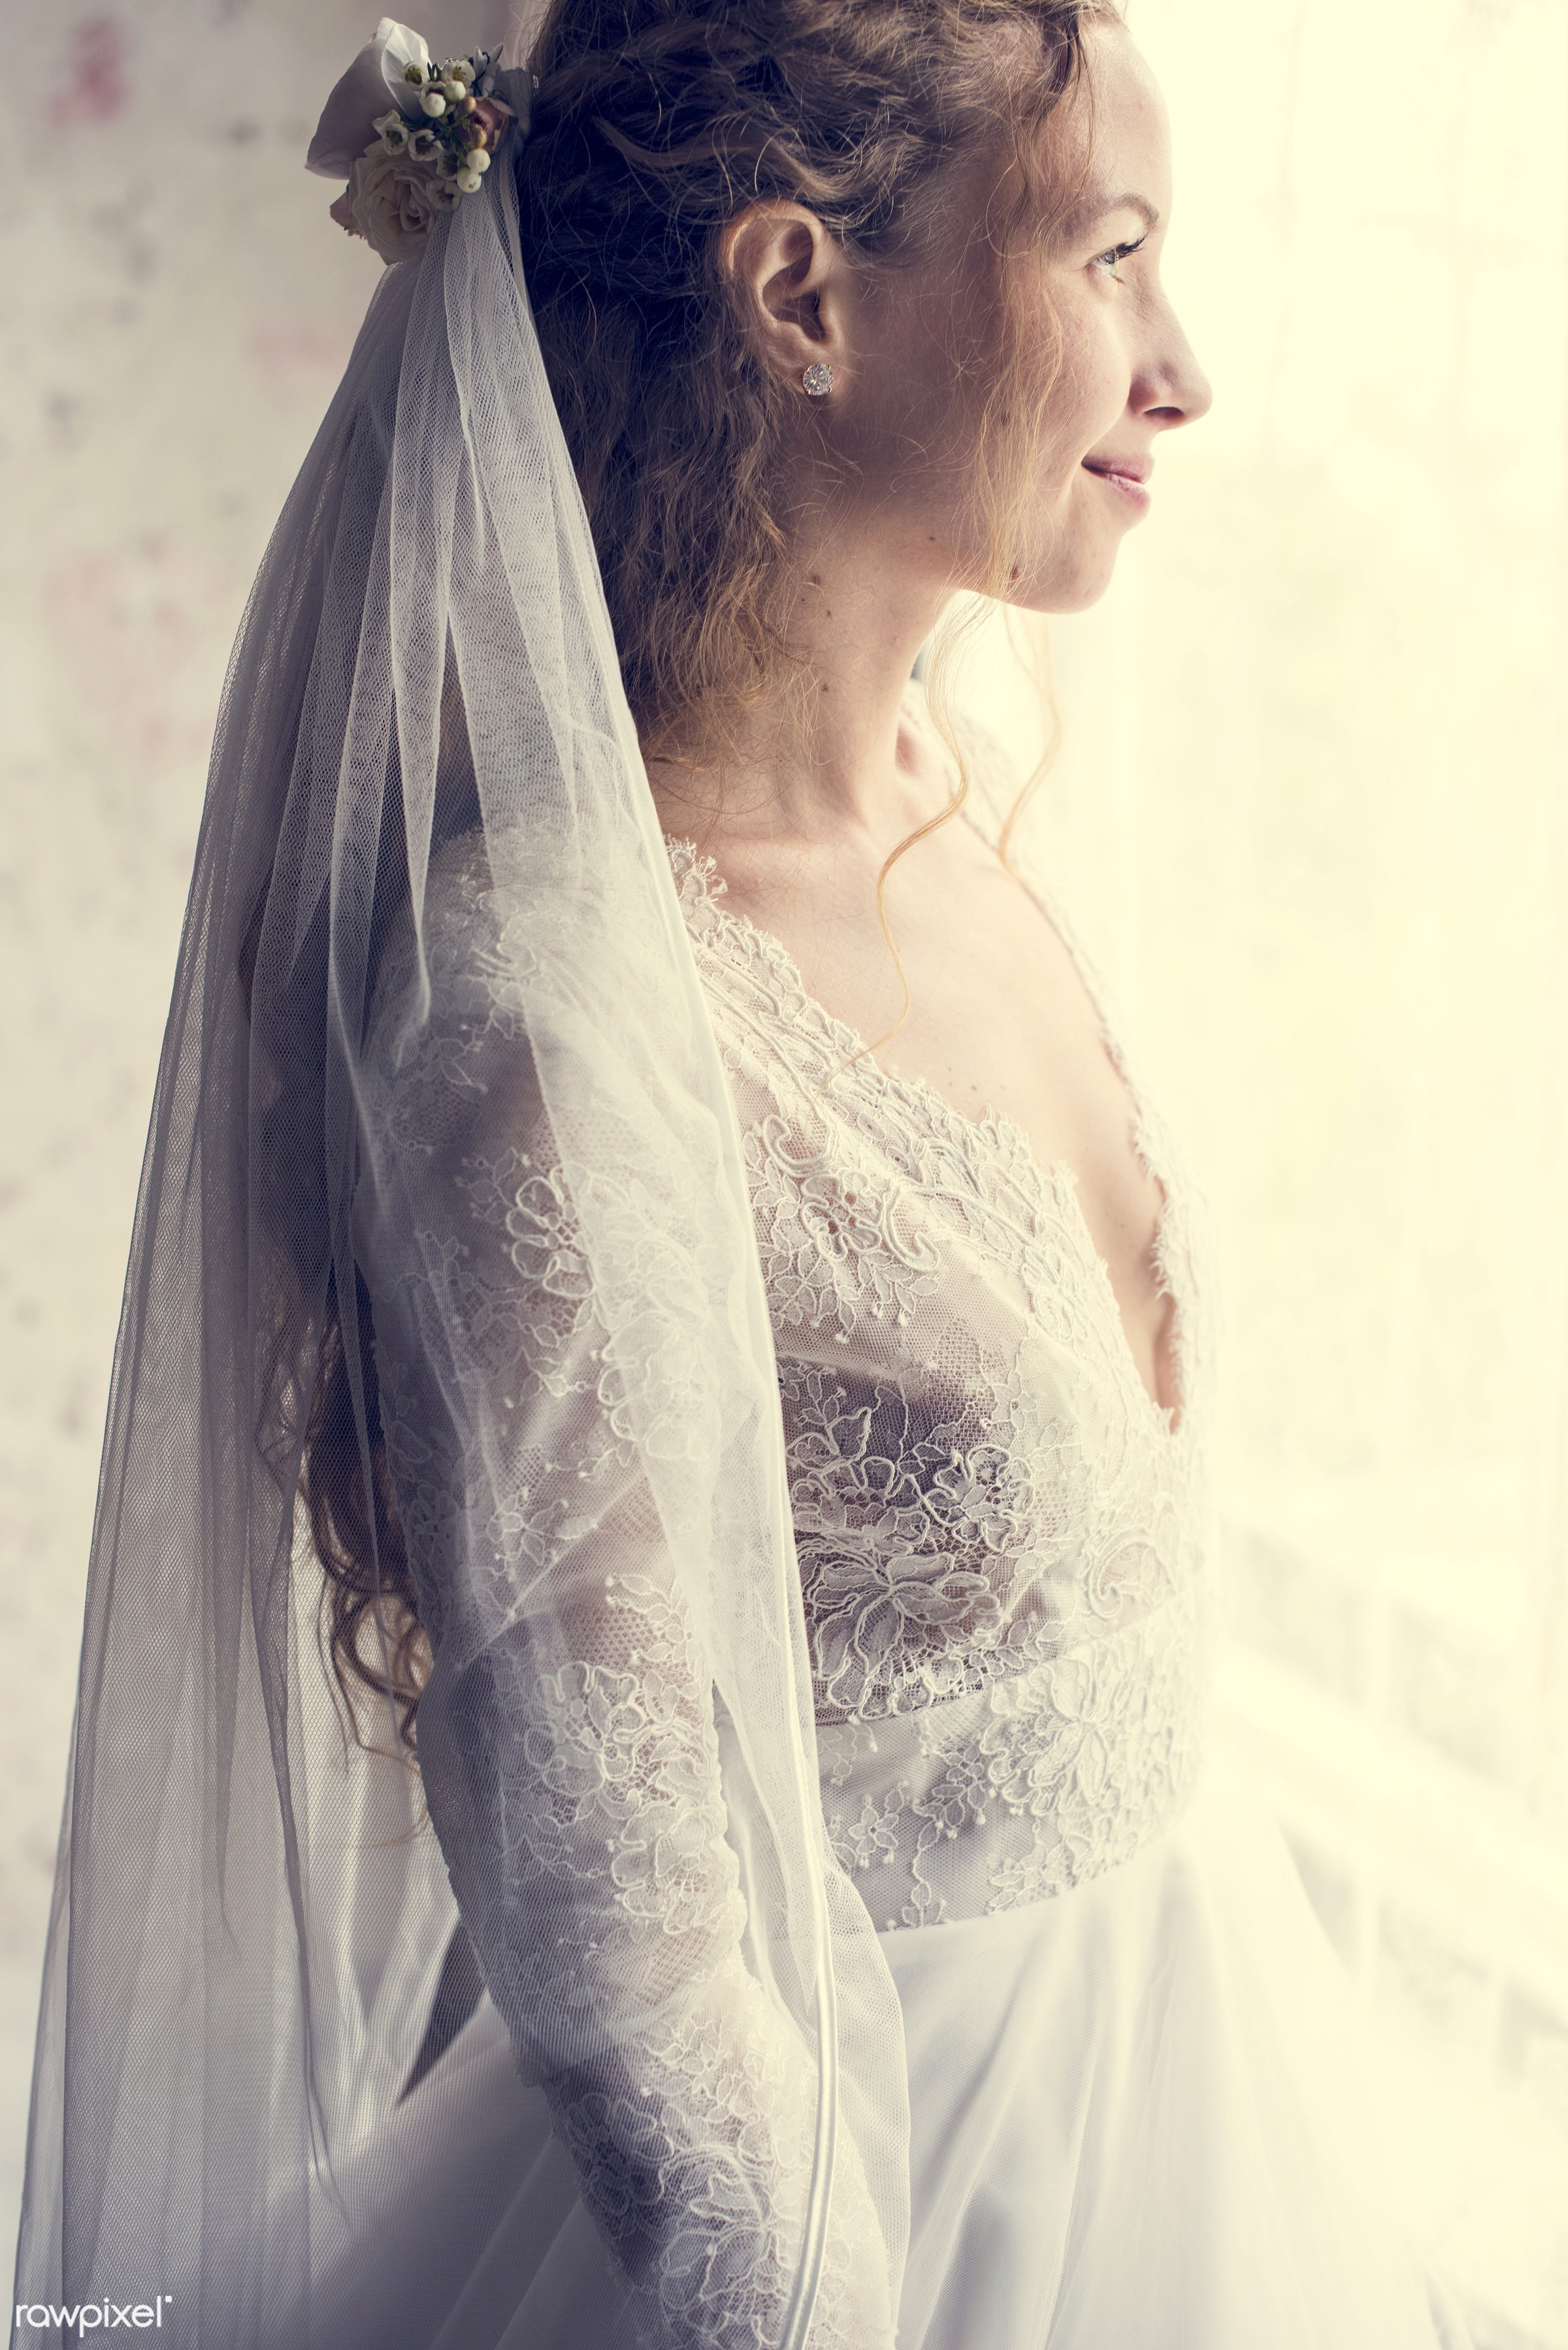 person, occasion, white dress, people, caucasian, glamour, love, gorgeous, attractive, happy, woman, feminine, gown, bride,...